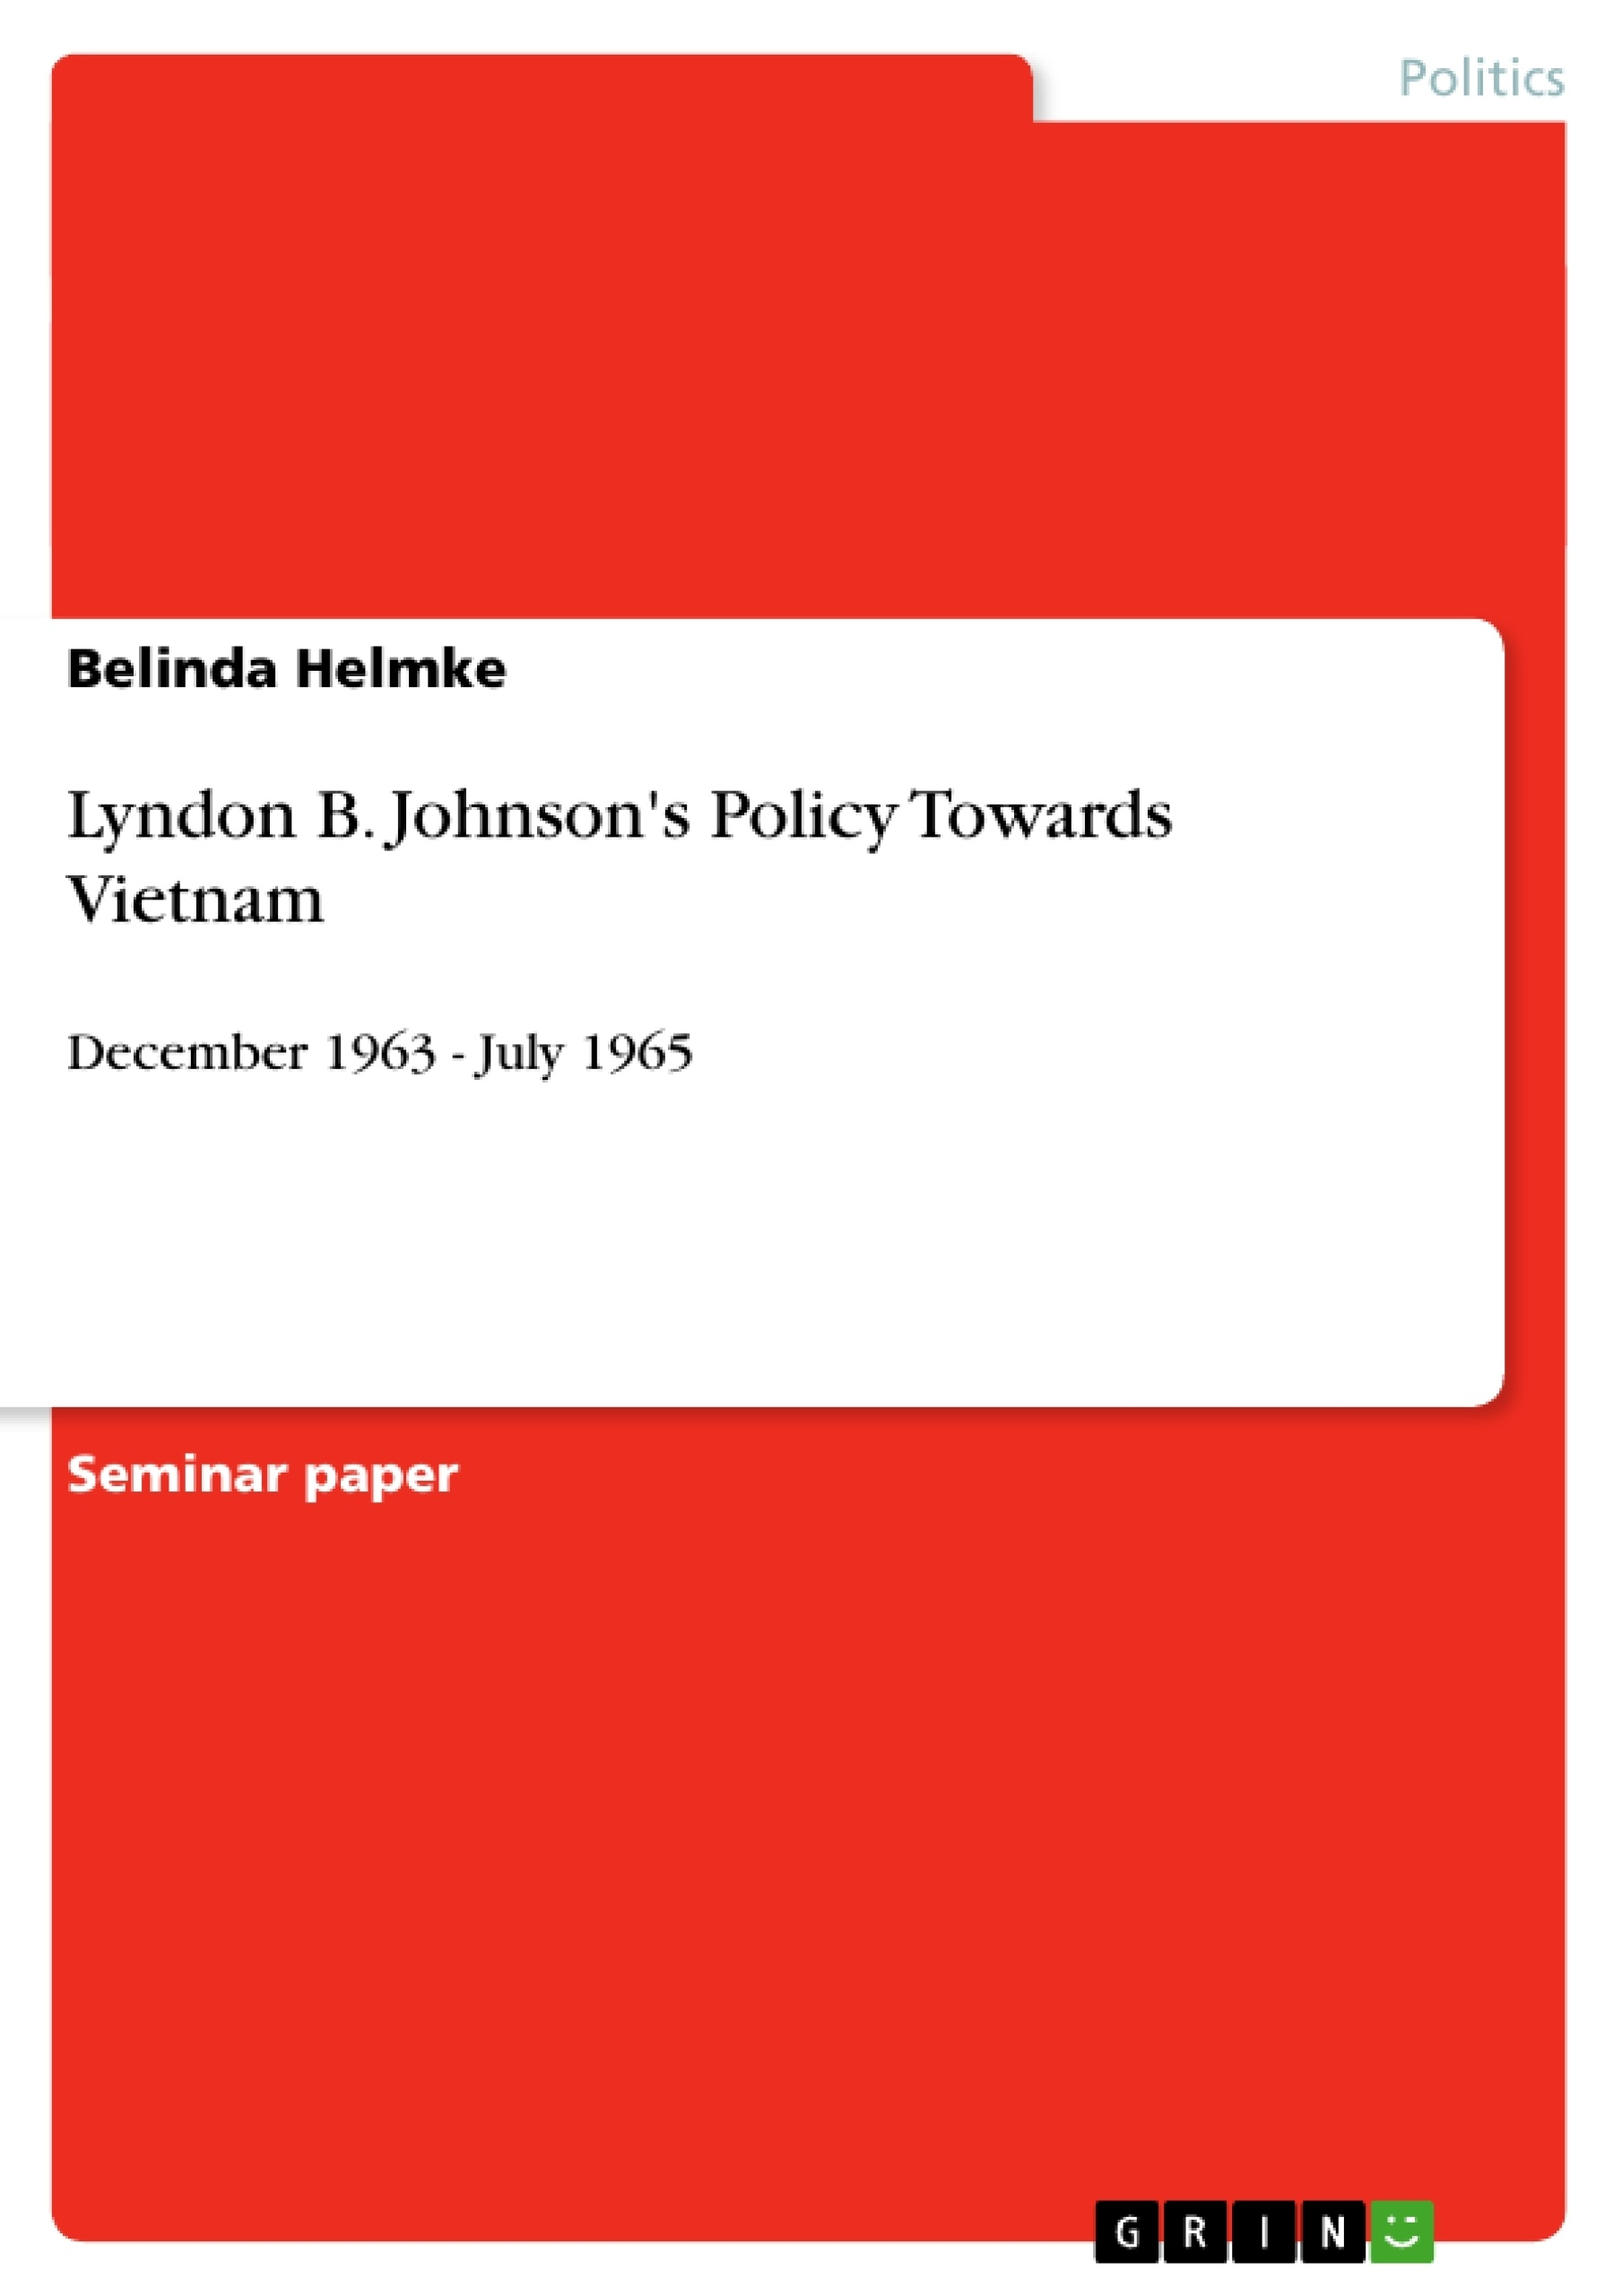 Title: Lyndon B. Johnson's Policy Towards Vietnam